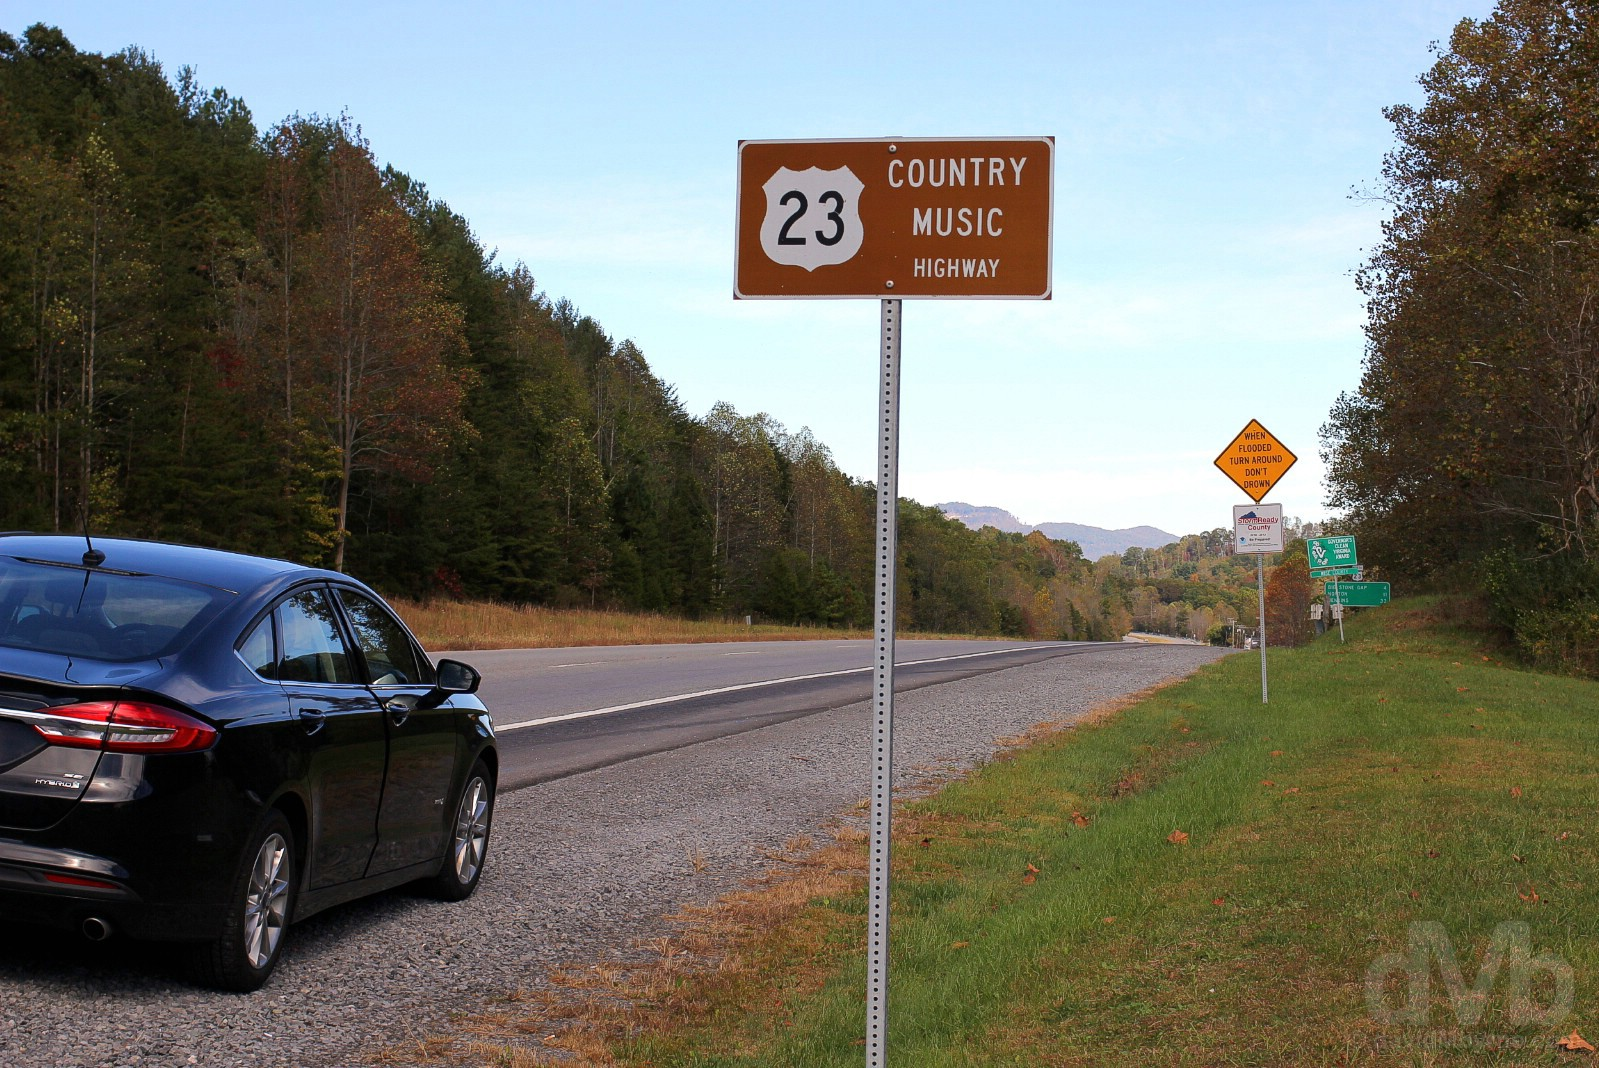 The Country Music Highway, US 23, Virginia. October 18, 2017.